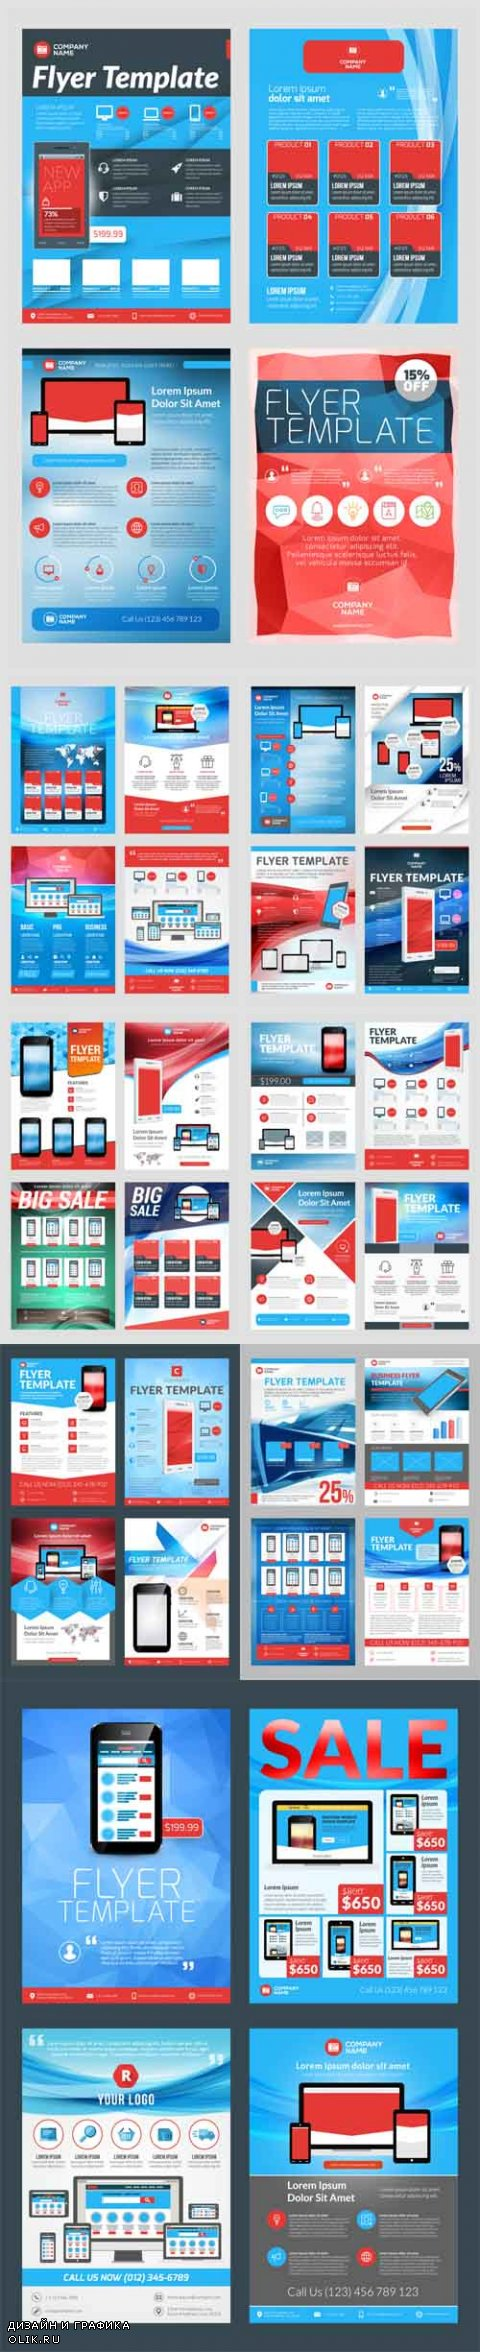 Vector Business Flyer Design Templates for Mobile Application or New Smartphone